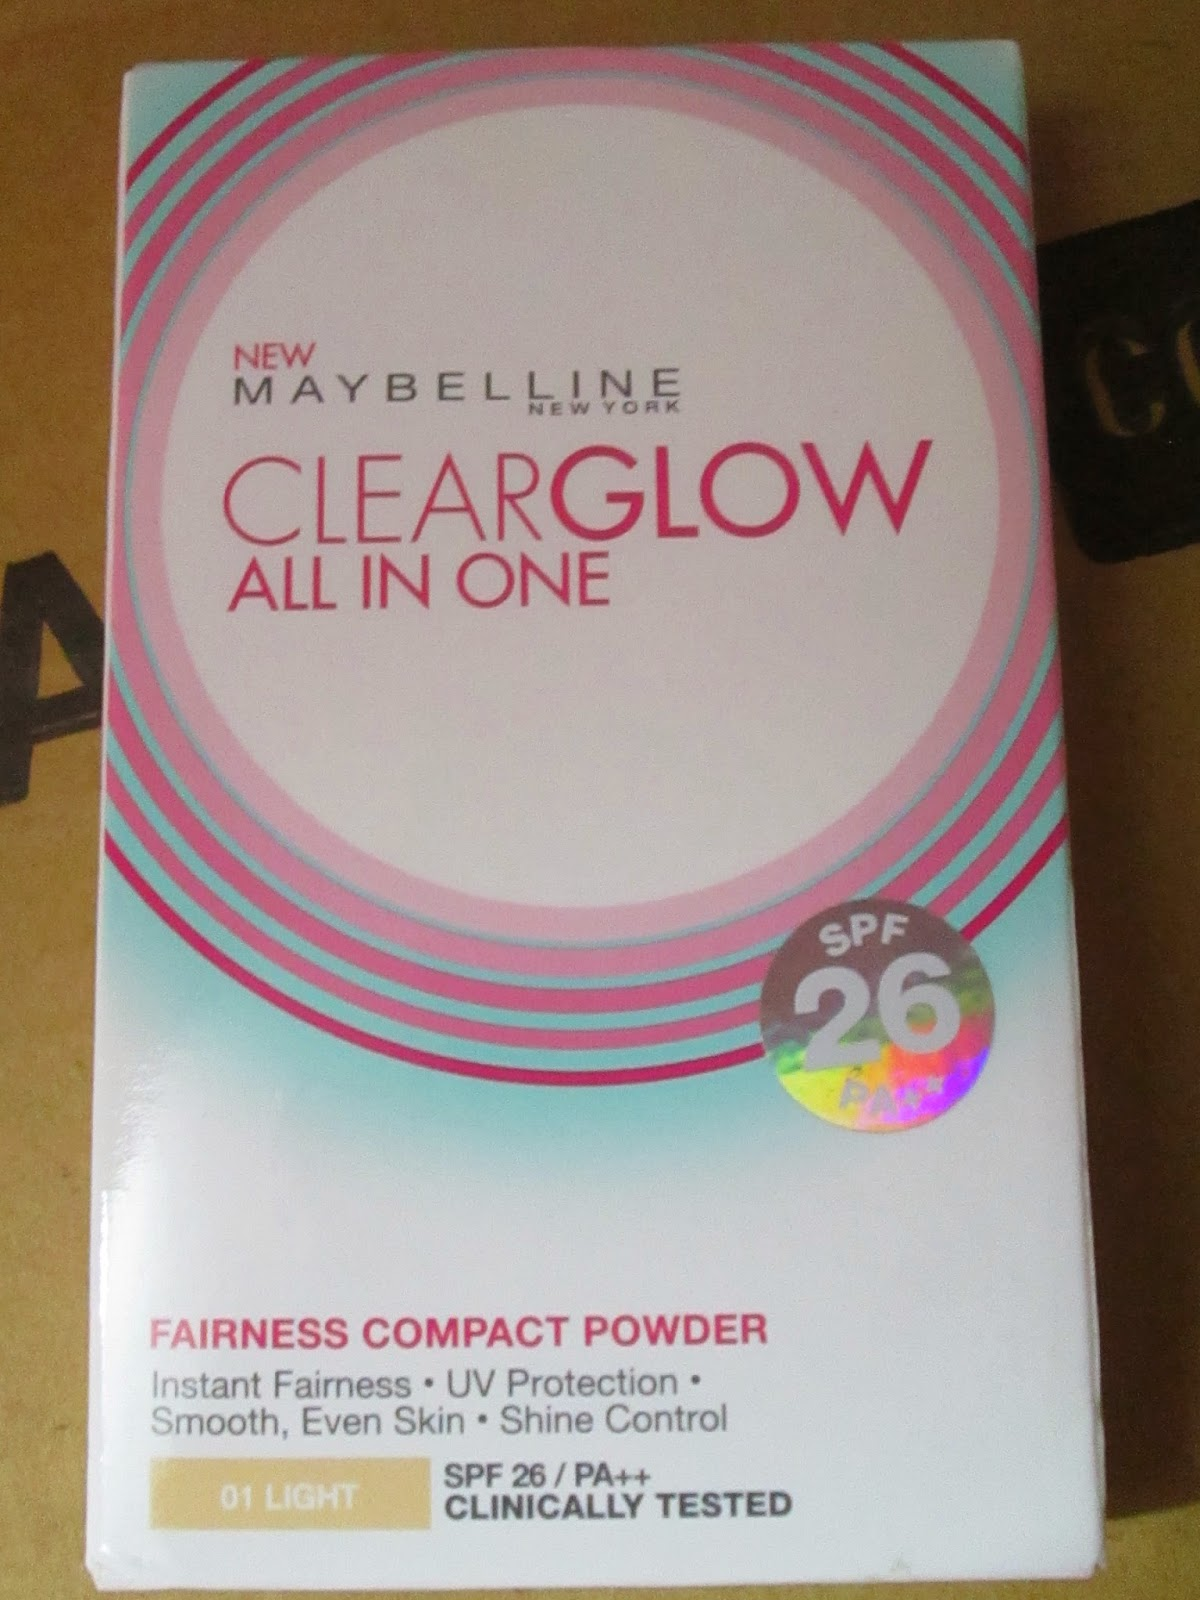 Maybelline Clear Glow Fairness Compact Powder Review | Makeup ...